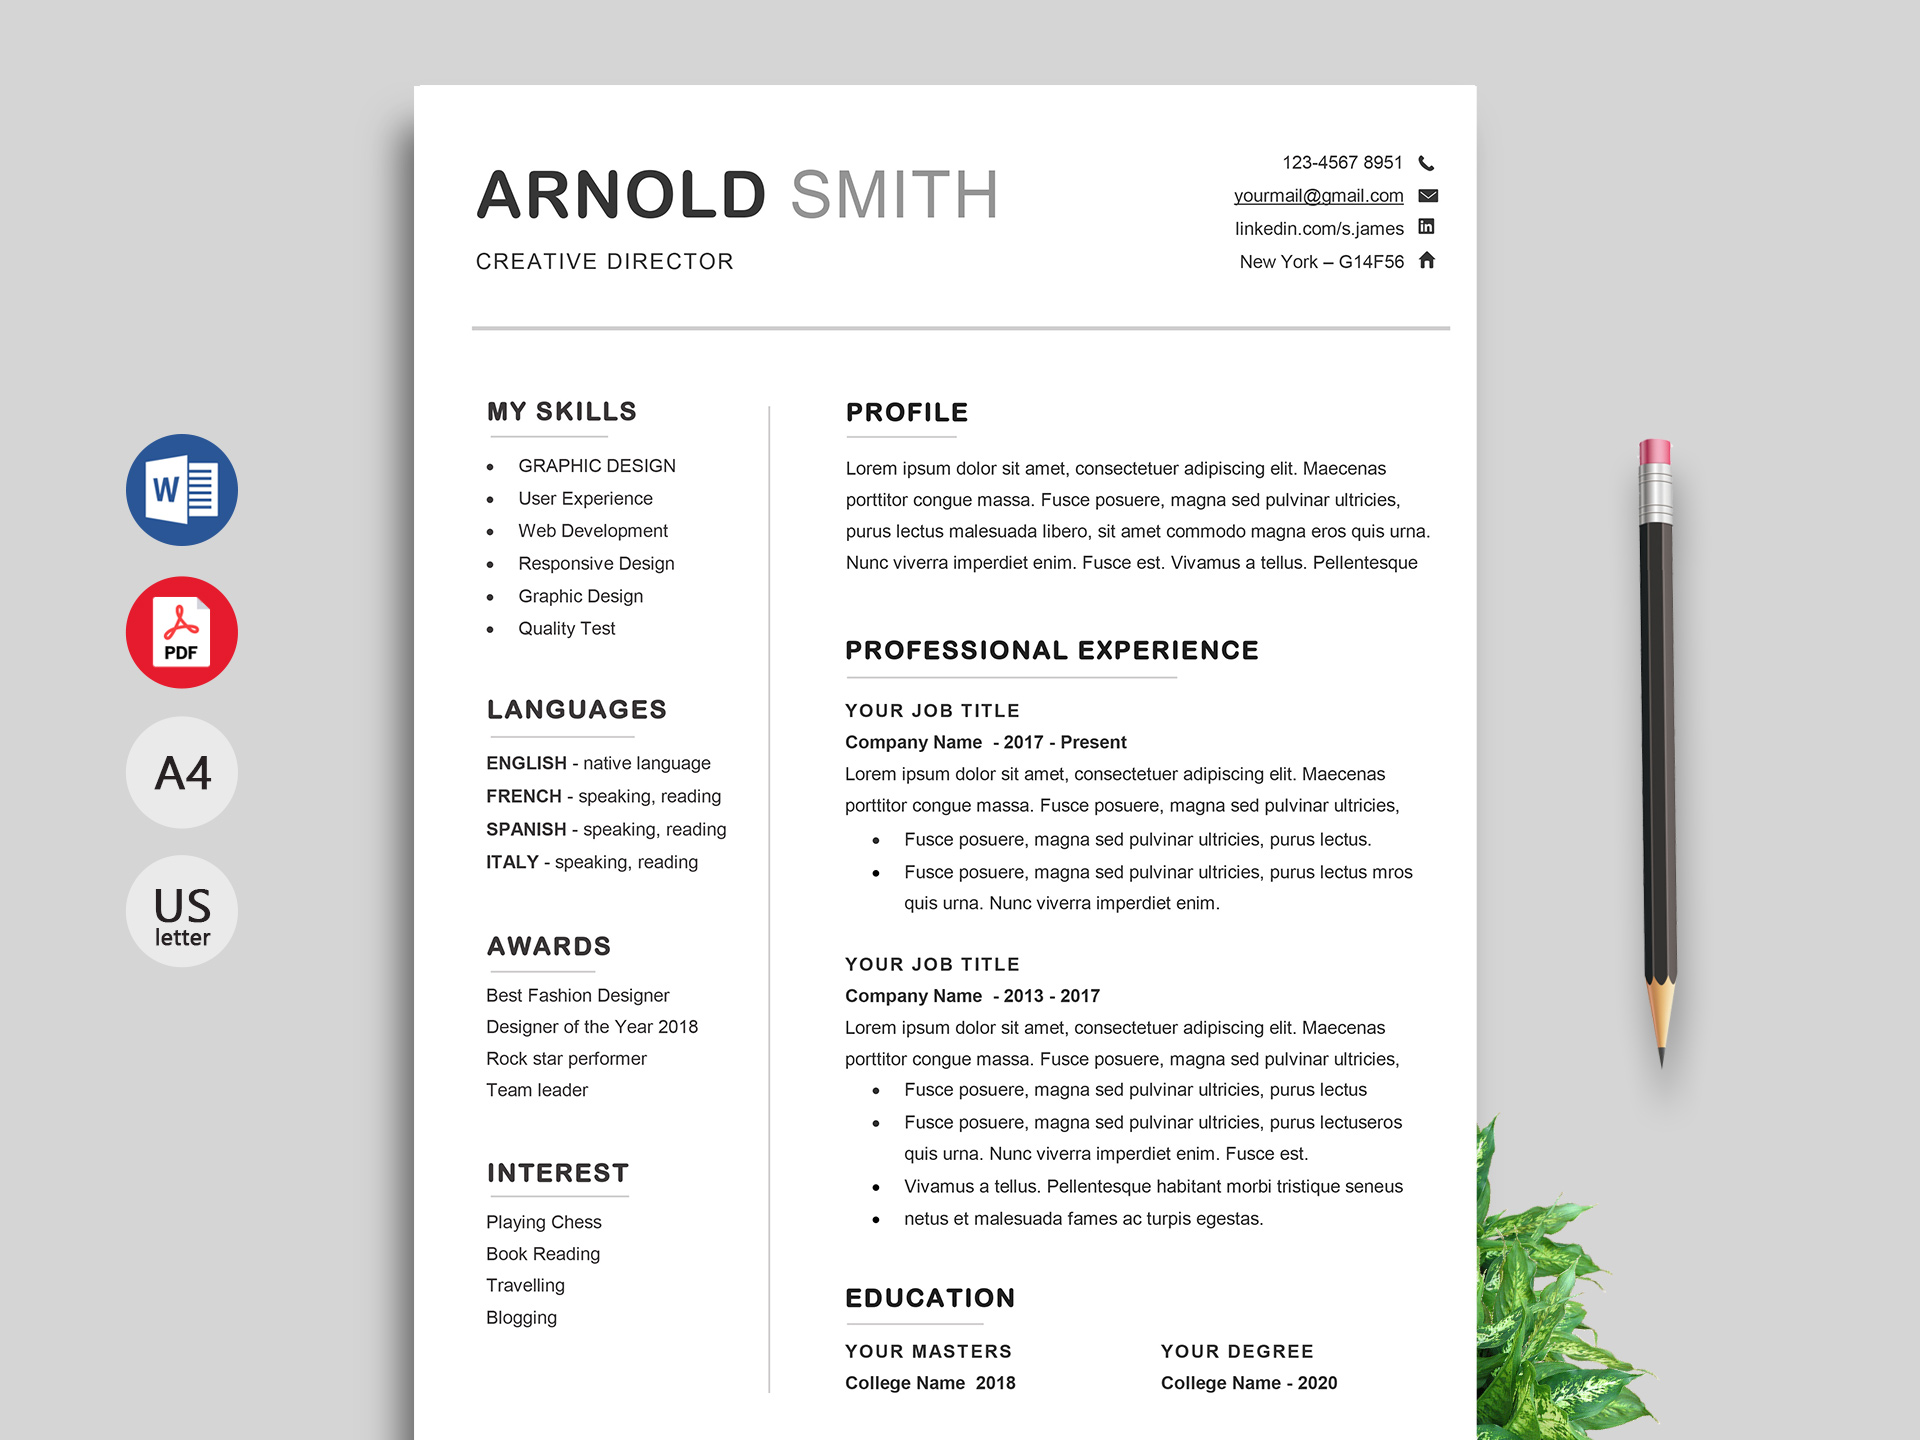 Free Resume Cv Templates In Word Format 2020 Resumekraft